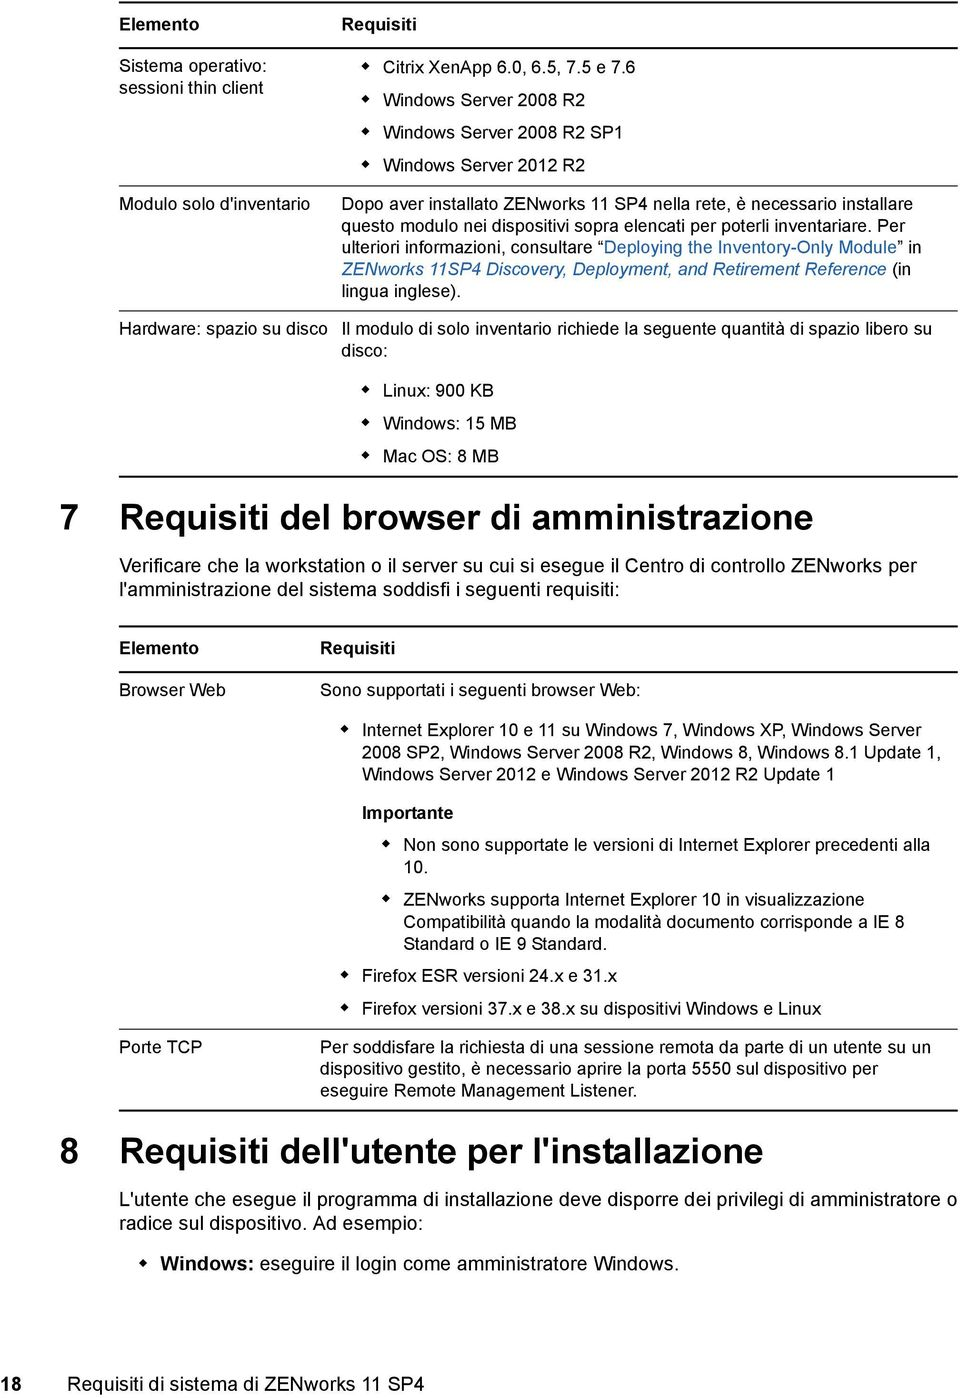 poterli inventariare. Per ulteriori informazioni, consultare Deploying the Inventory-Only Module in ZENworks 11SP4 Discovery, Deployment, and Retirement Reference (in lingua inglese).